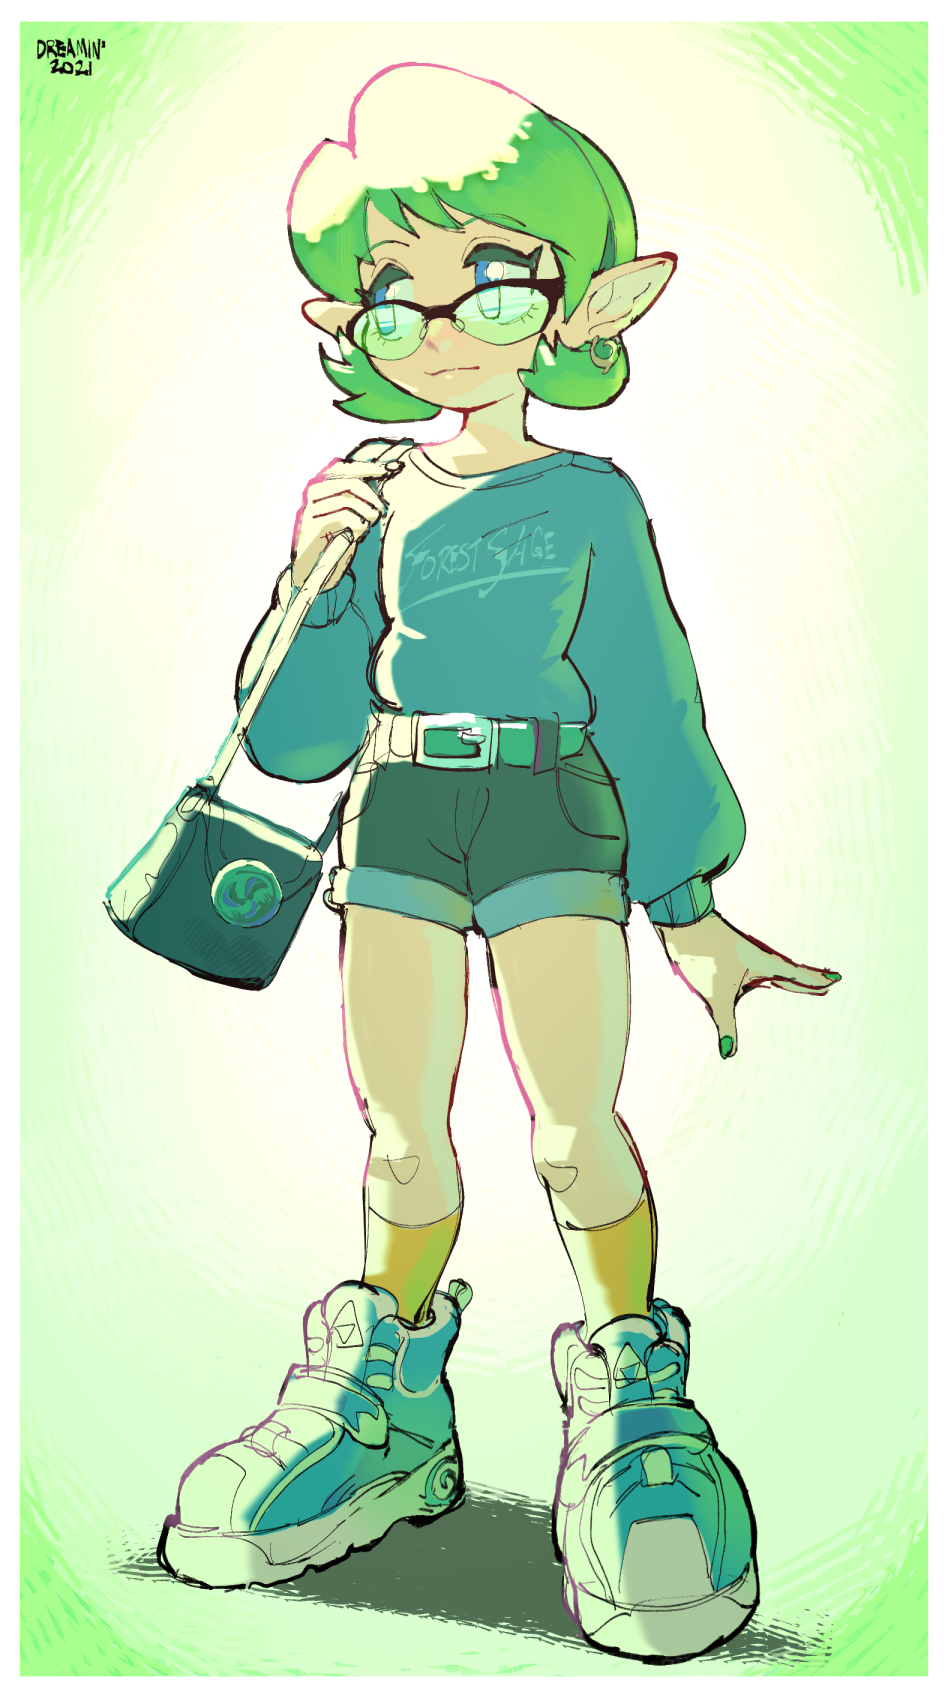 (COMMISSION) Modern day Forest Sage